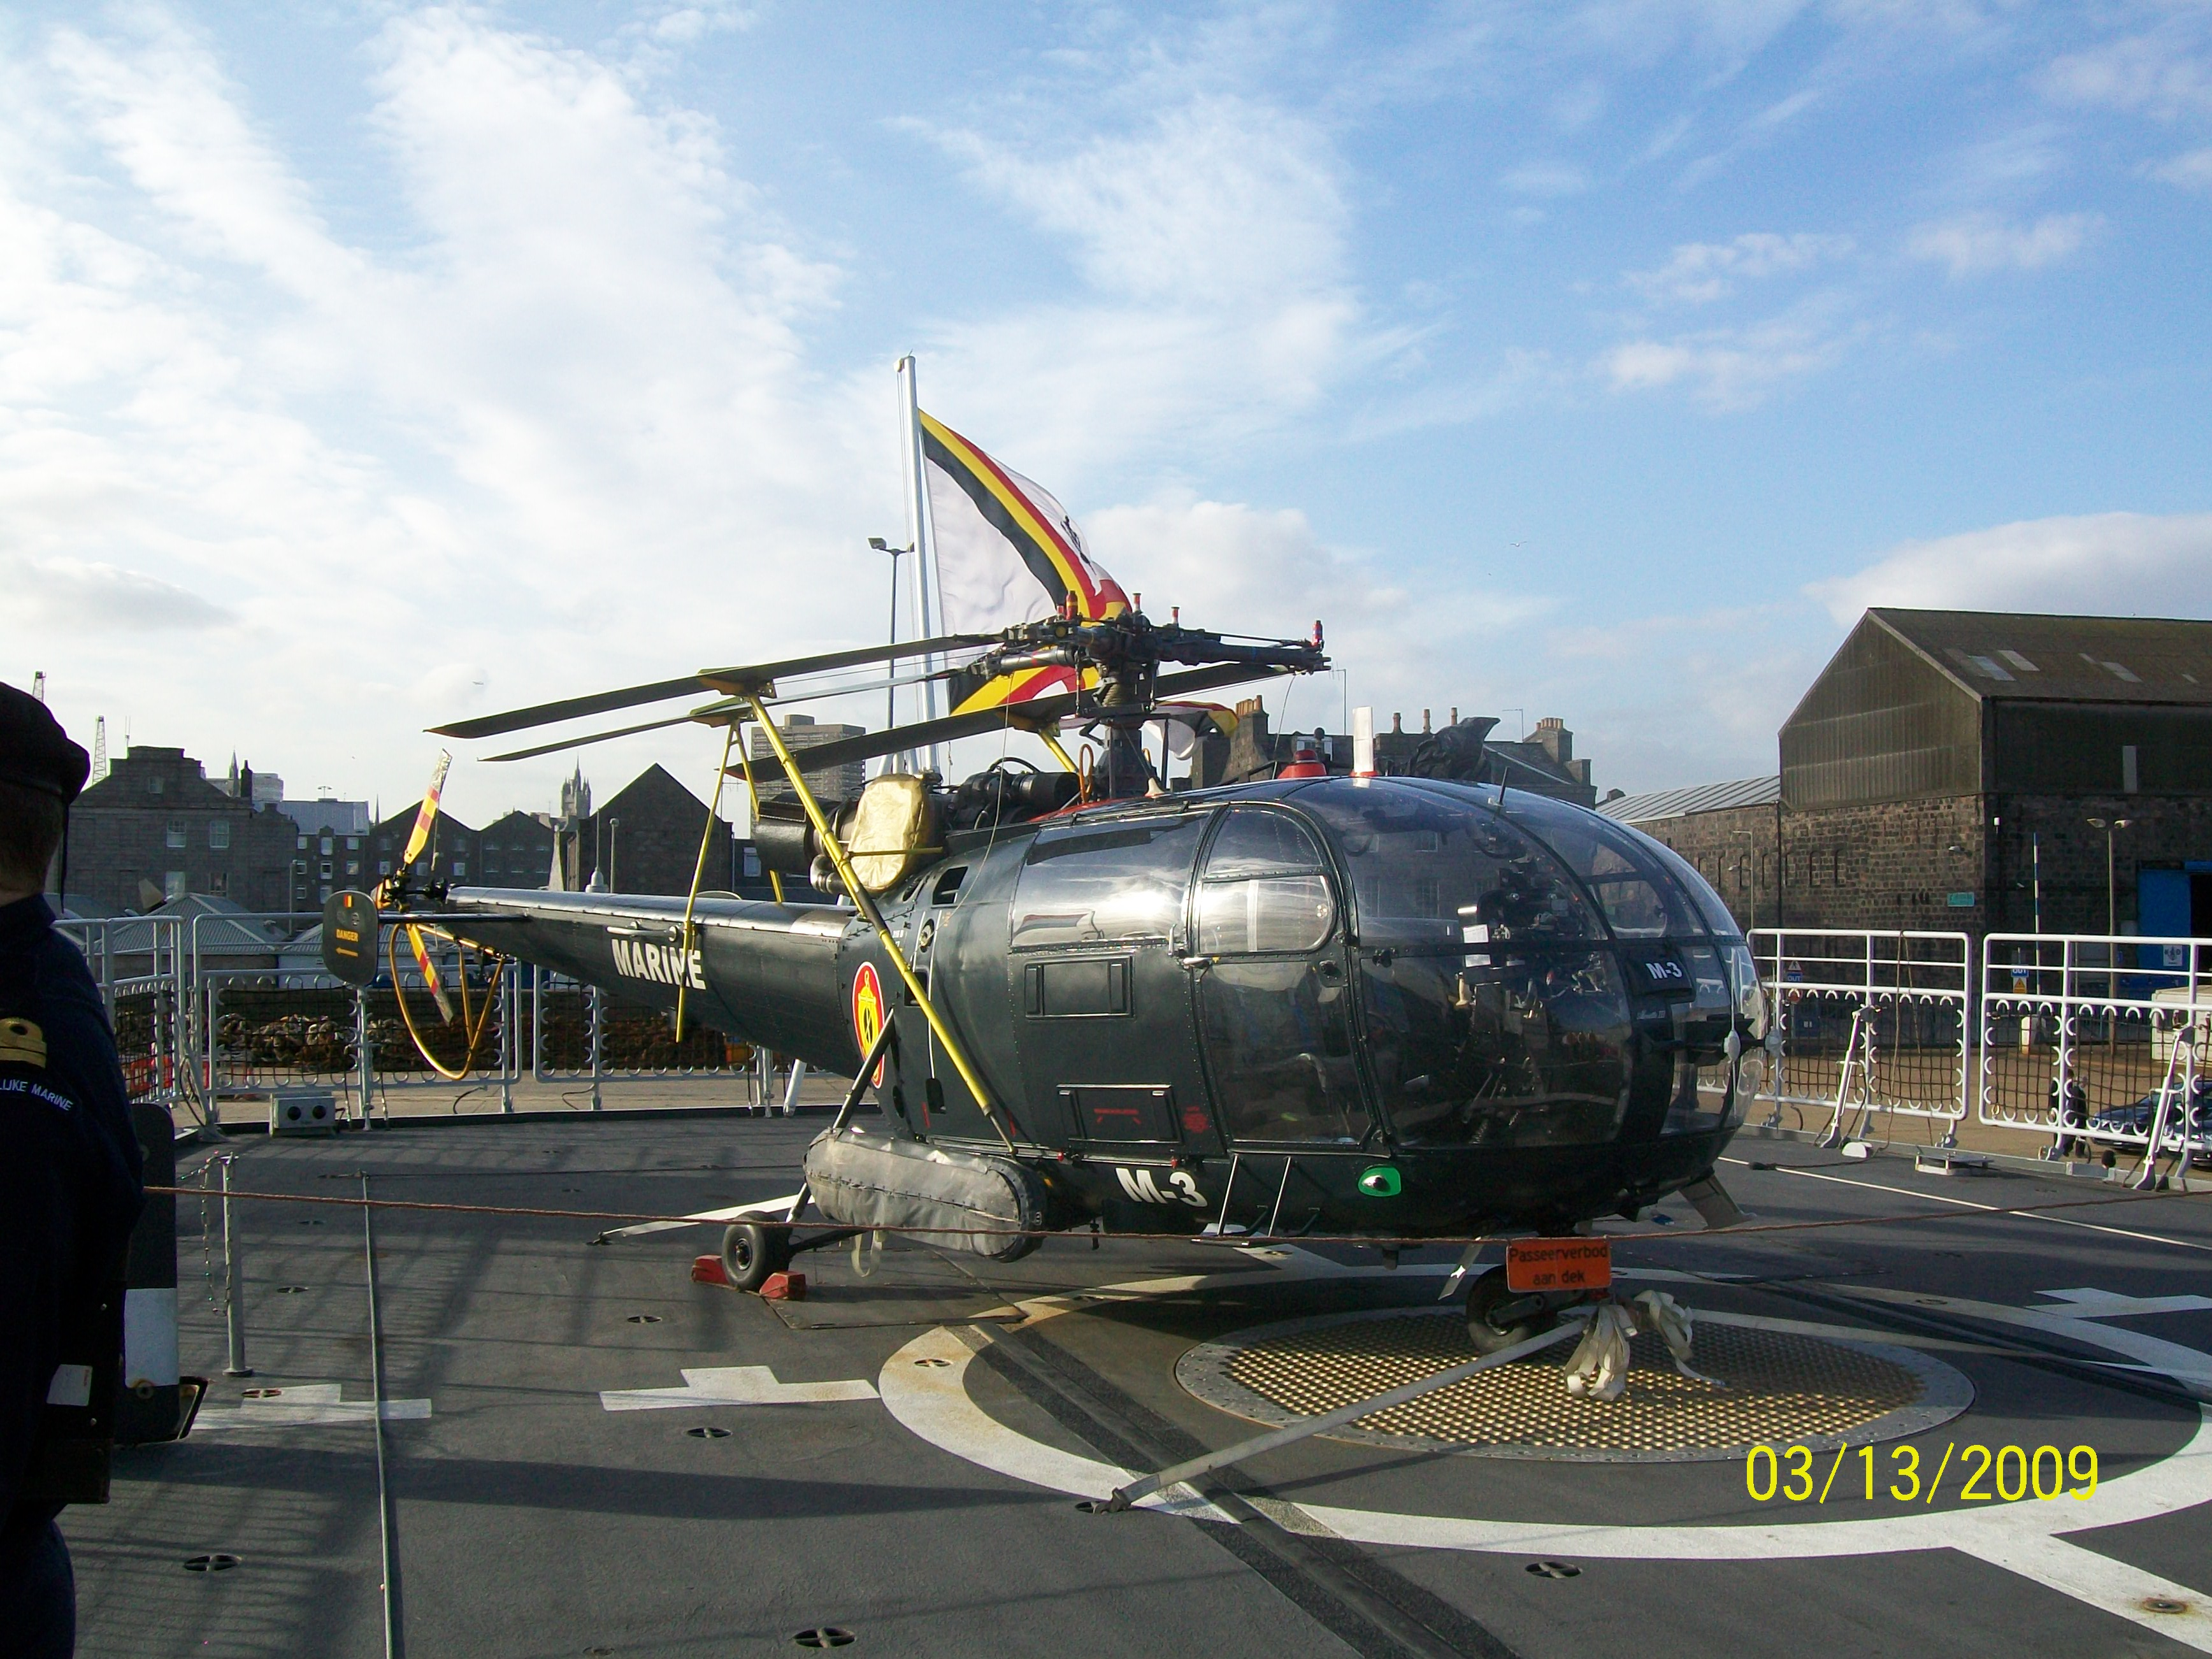 Alouette III - Page 5 1005040843461050245966628